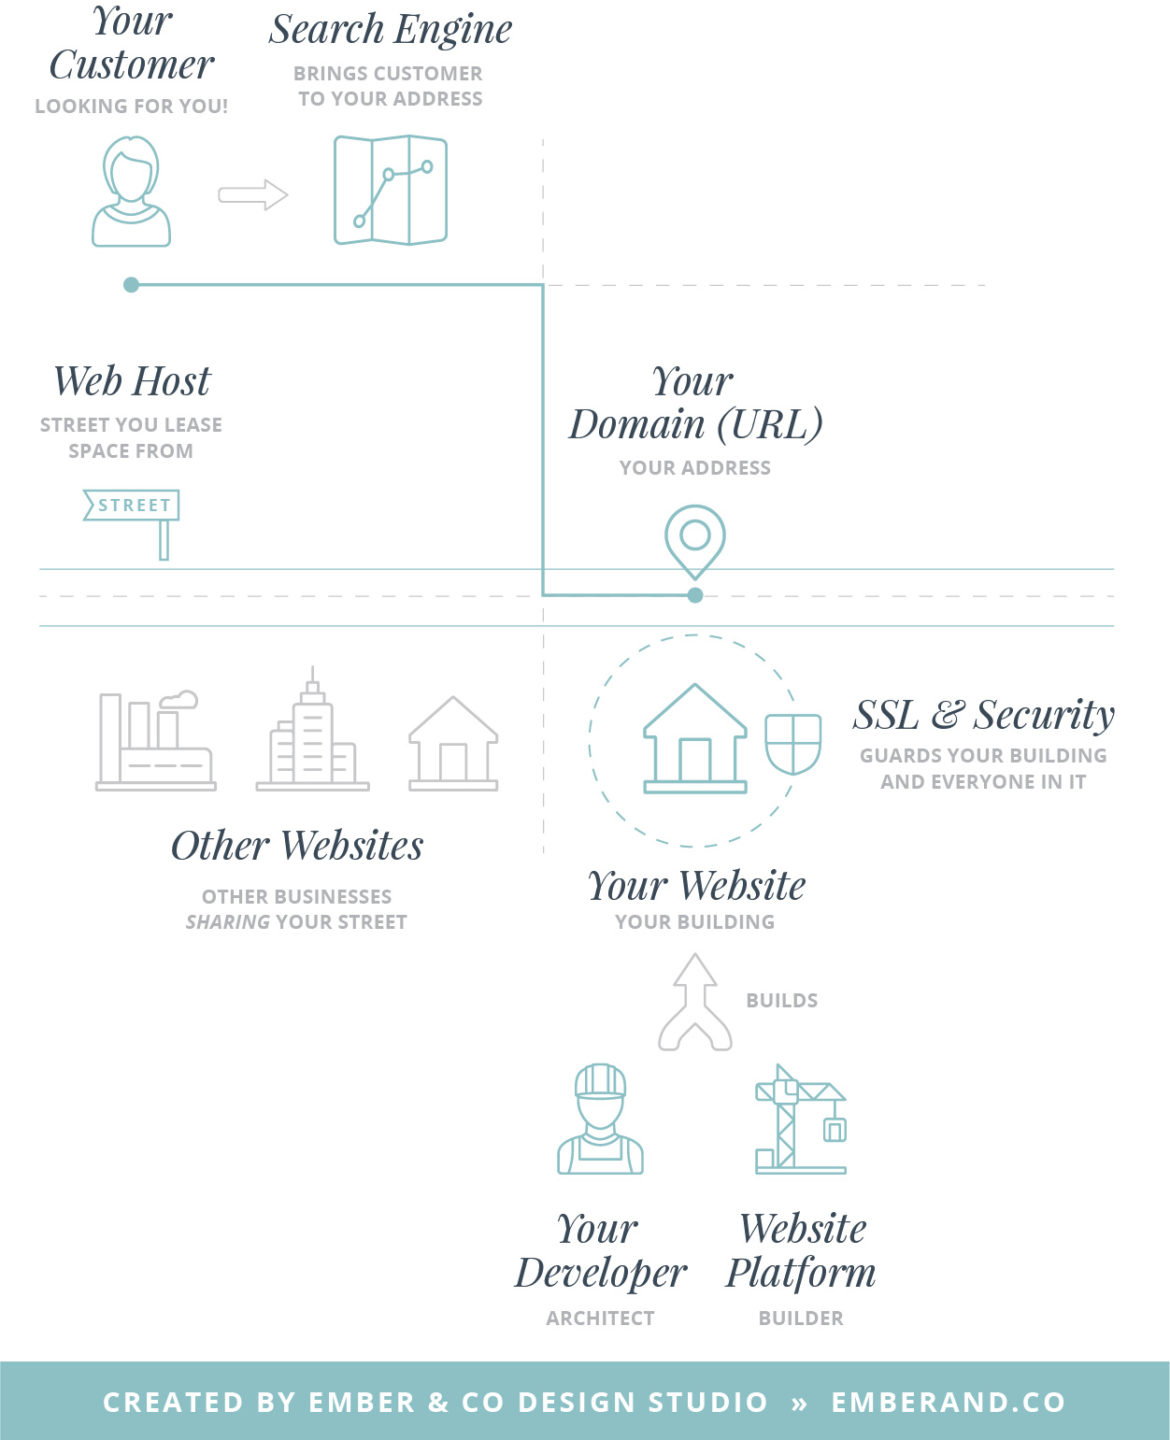 Website Hosting, Website Domains, SSL Certificates, Security, Website Backups, And Website Platforms Explained with a Map Analogy by Ember & Co Design Studio